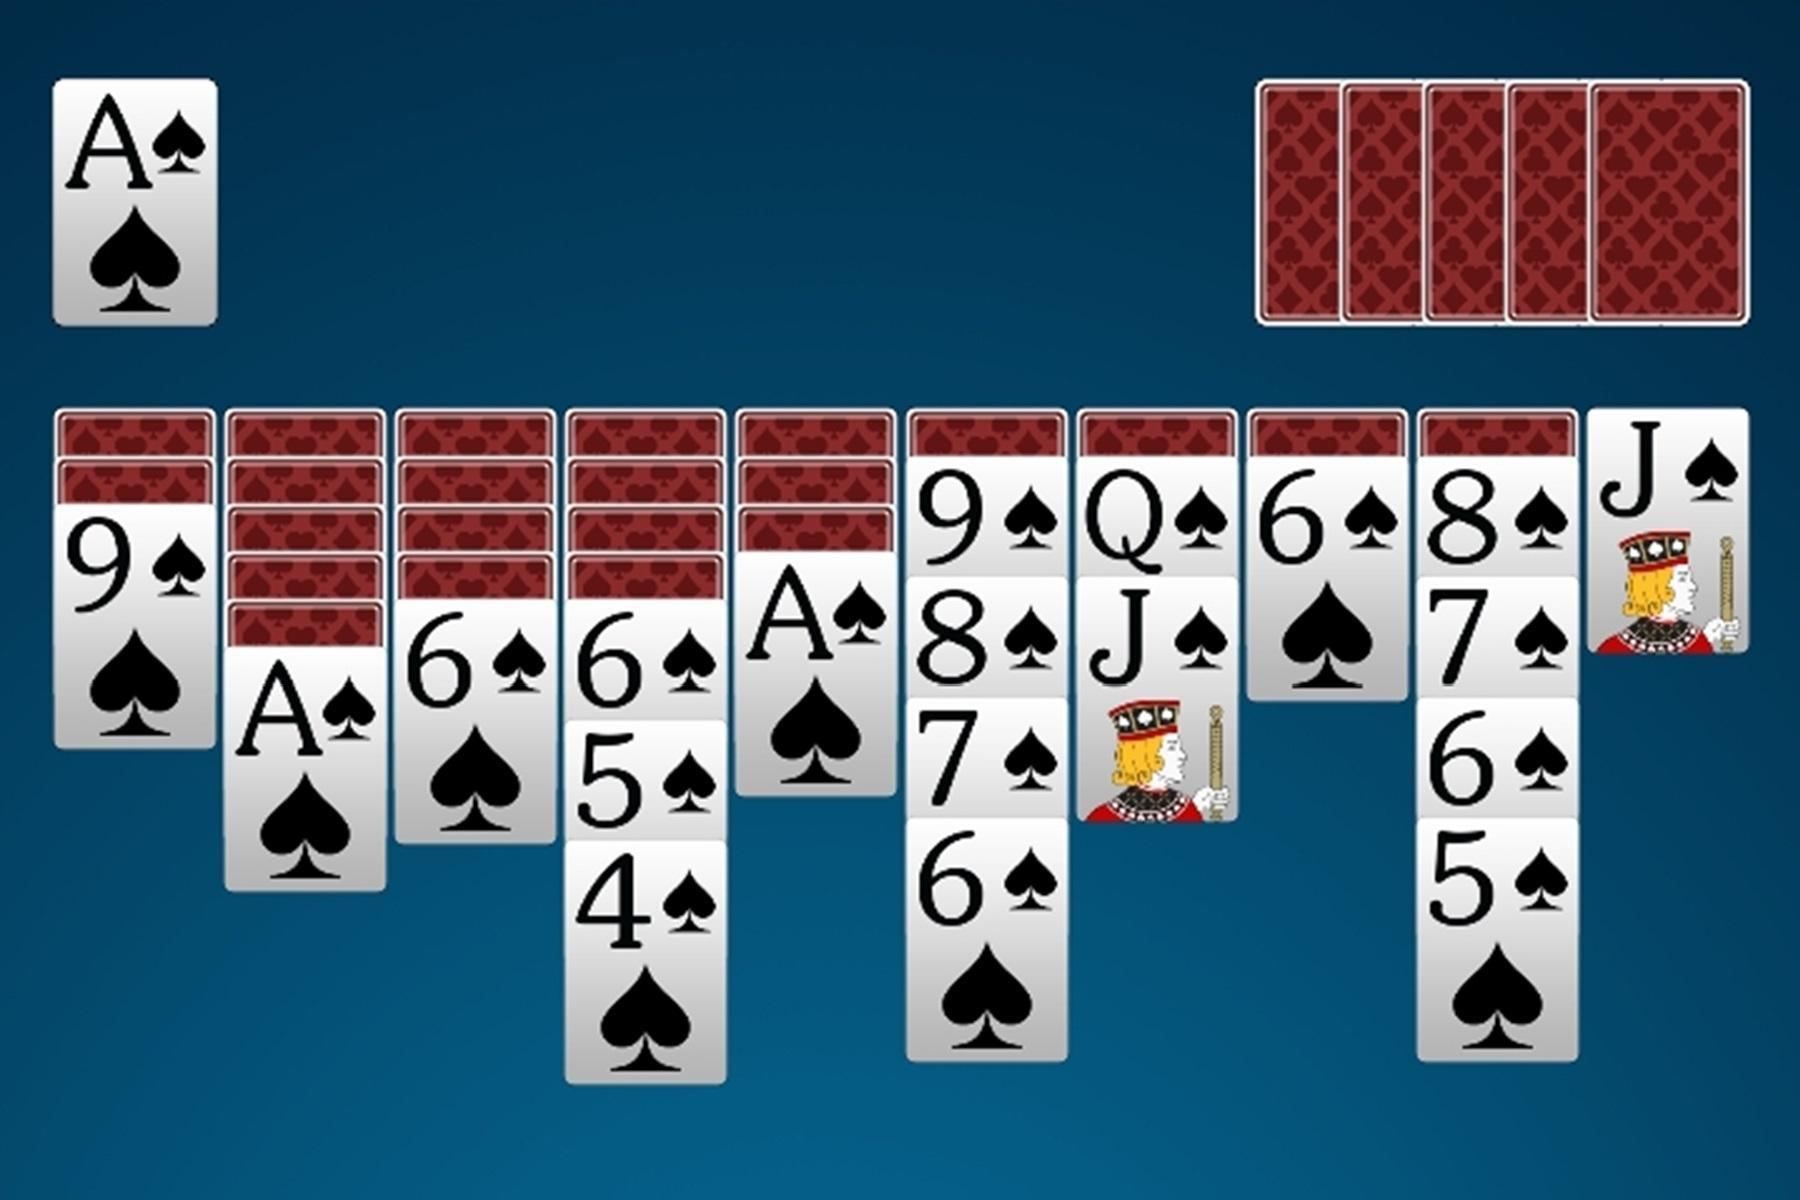 Spider Solitaire 4.4 Screenshot 8